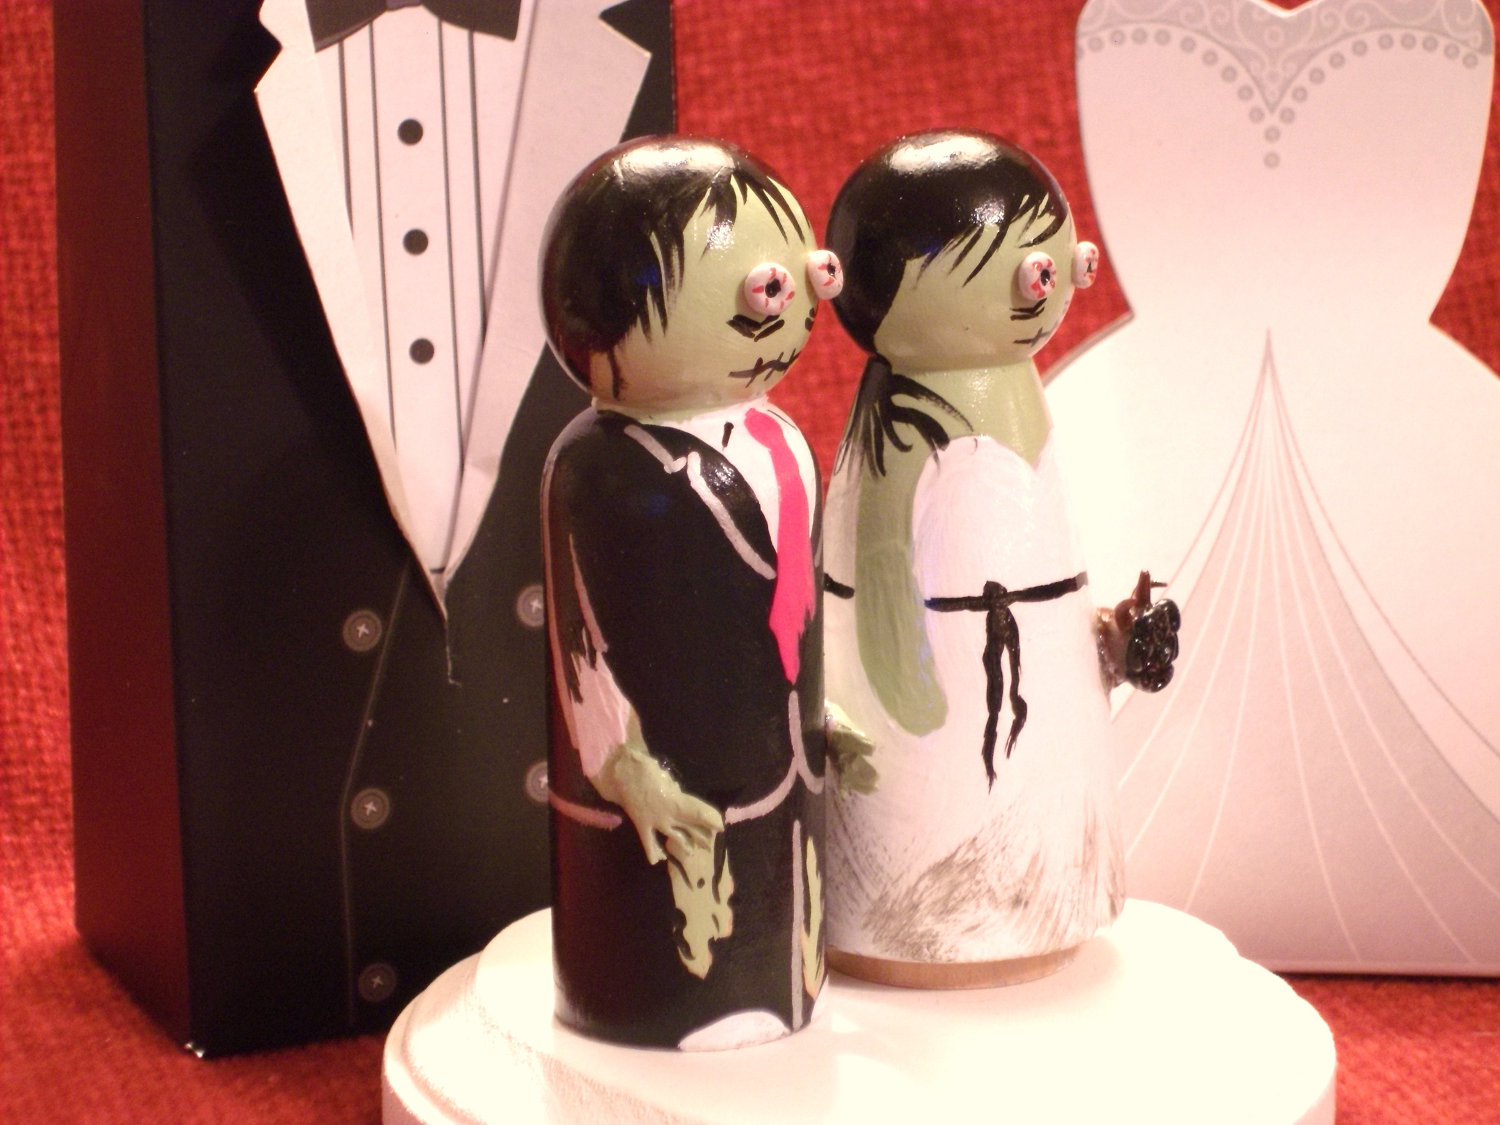 Handmade-wedding-finds-for-halloween-themed-i-dos-scary-cake-topper.original